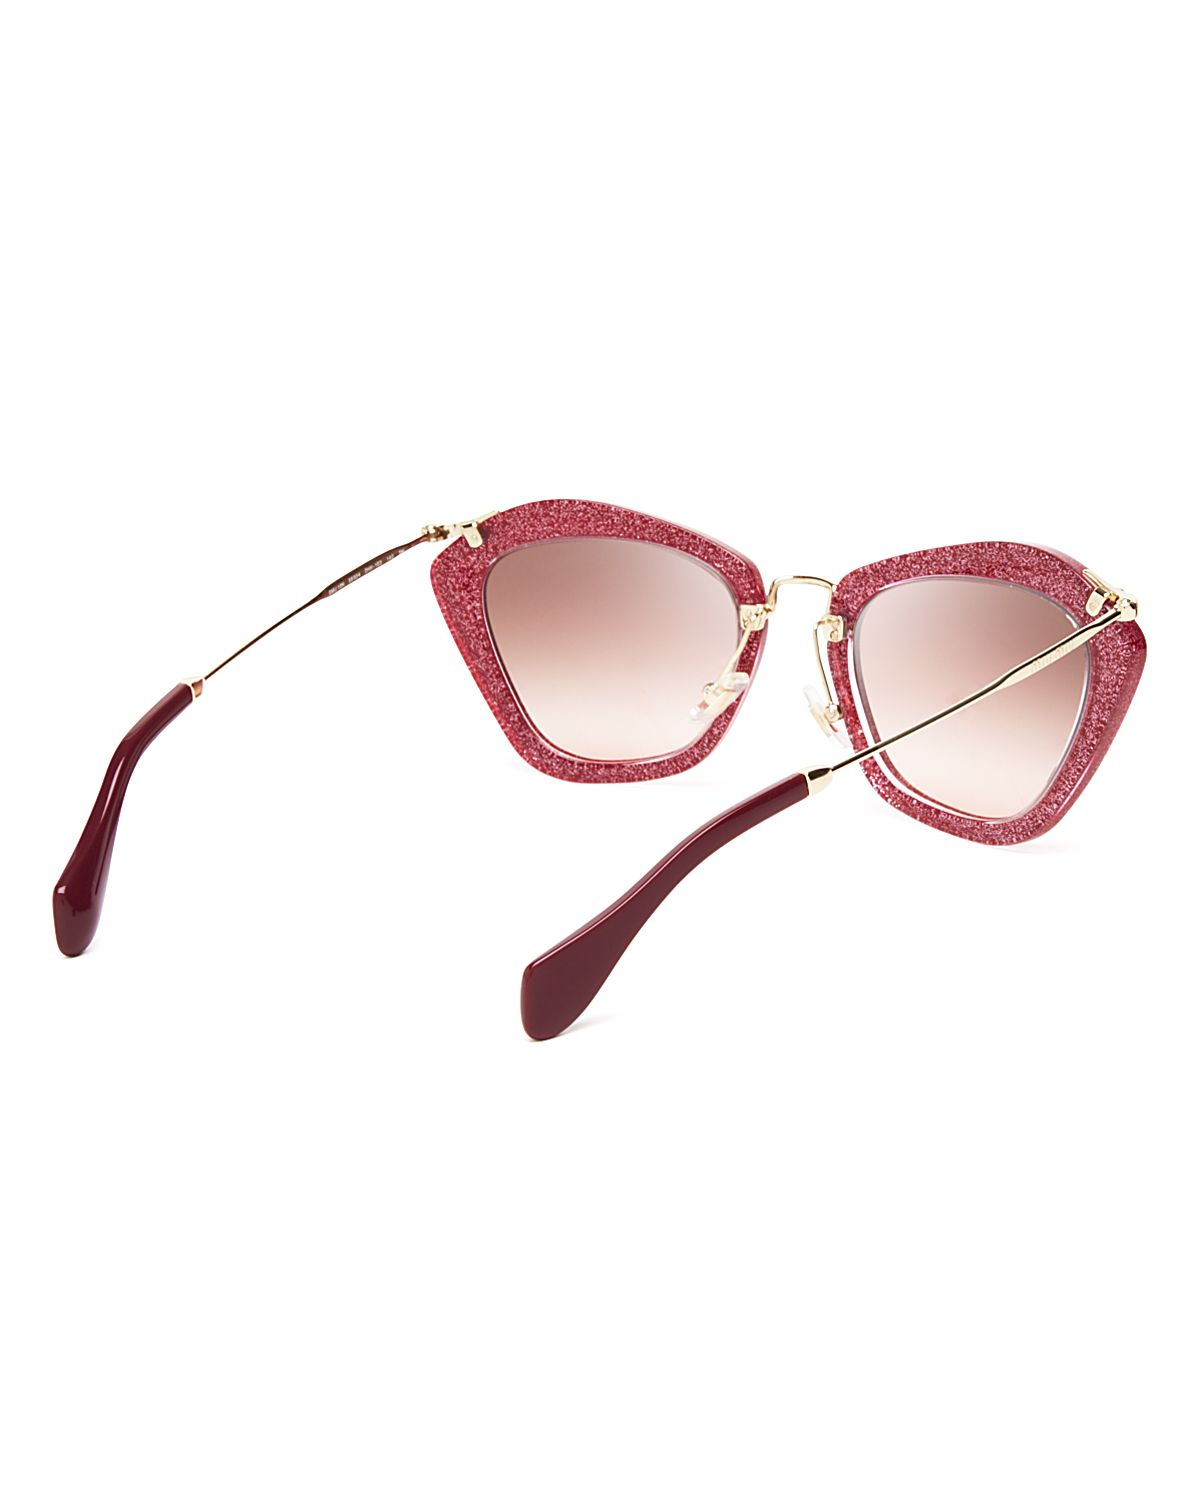 bdc702df76cf0 Miu Miu Red Cat Eye Sunglasses